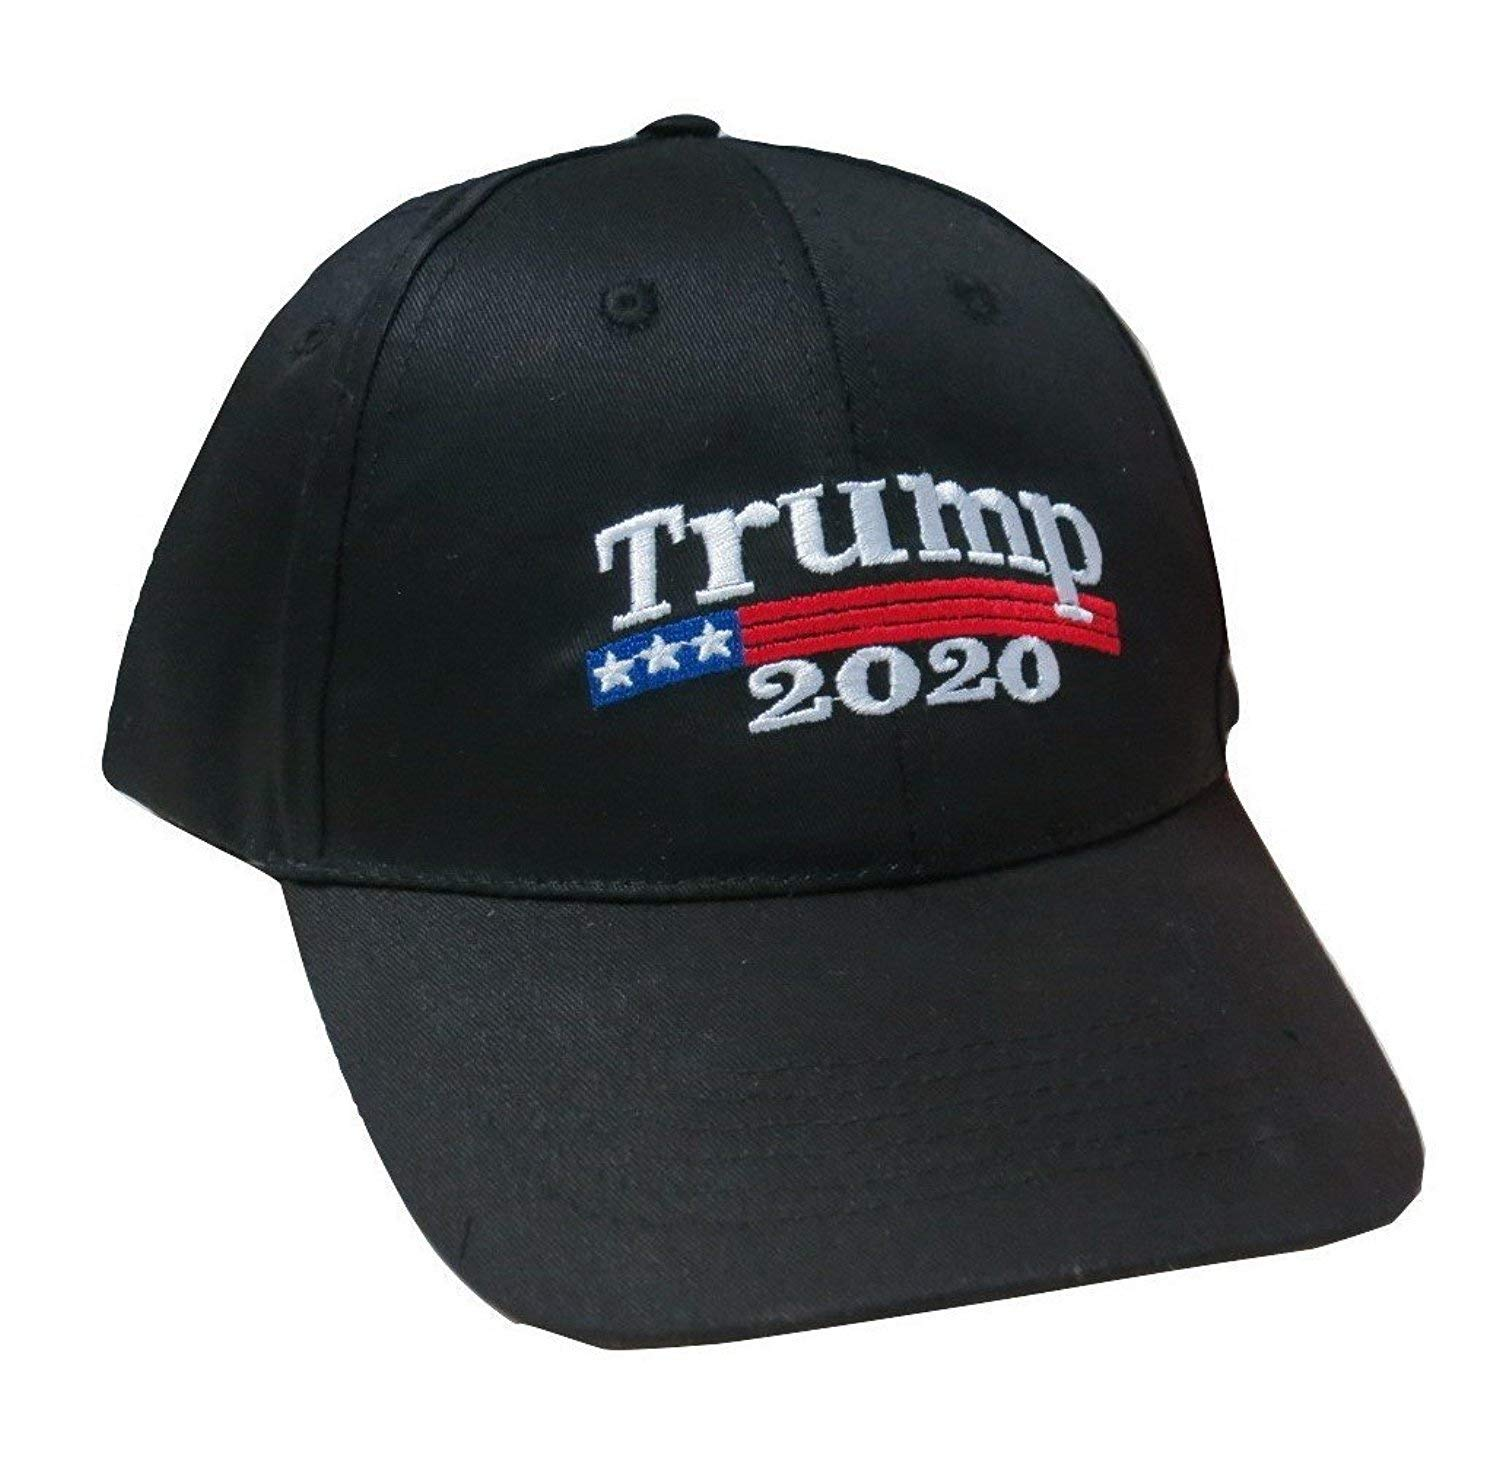 Trump 2020 Baseball Cap Adjustable Cotton USA2020 Brand